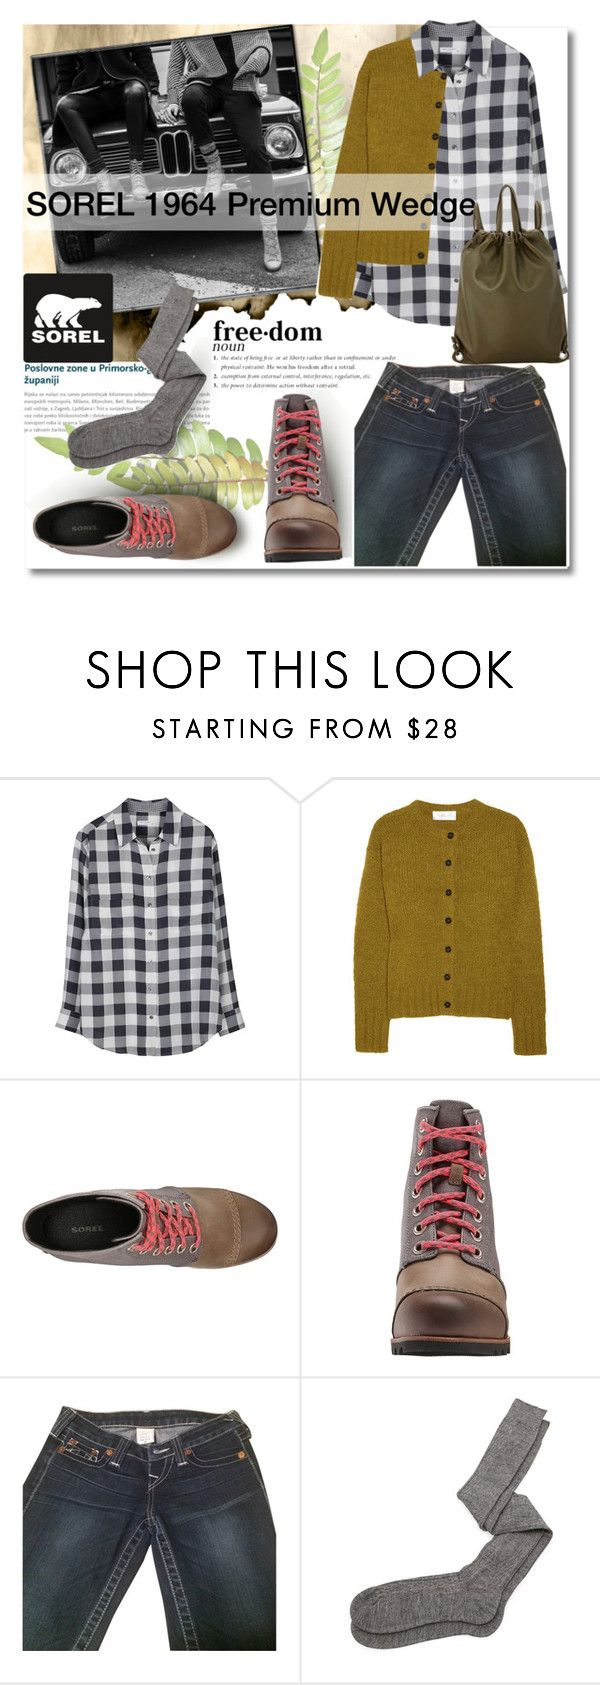 """""""The 1964 Premium Wedge from SOREL"""" by pattykake ❤ liked on Polyvore featuring SOREL, Equipment, A.L.C., True Religion, Aiayu, Robert Clergerie, Sorel, sorelstyle and premiumwedge"""